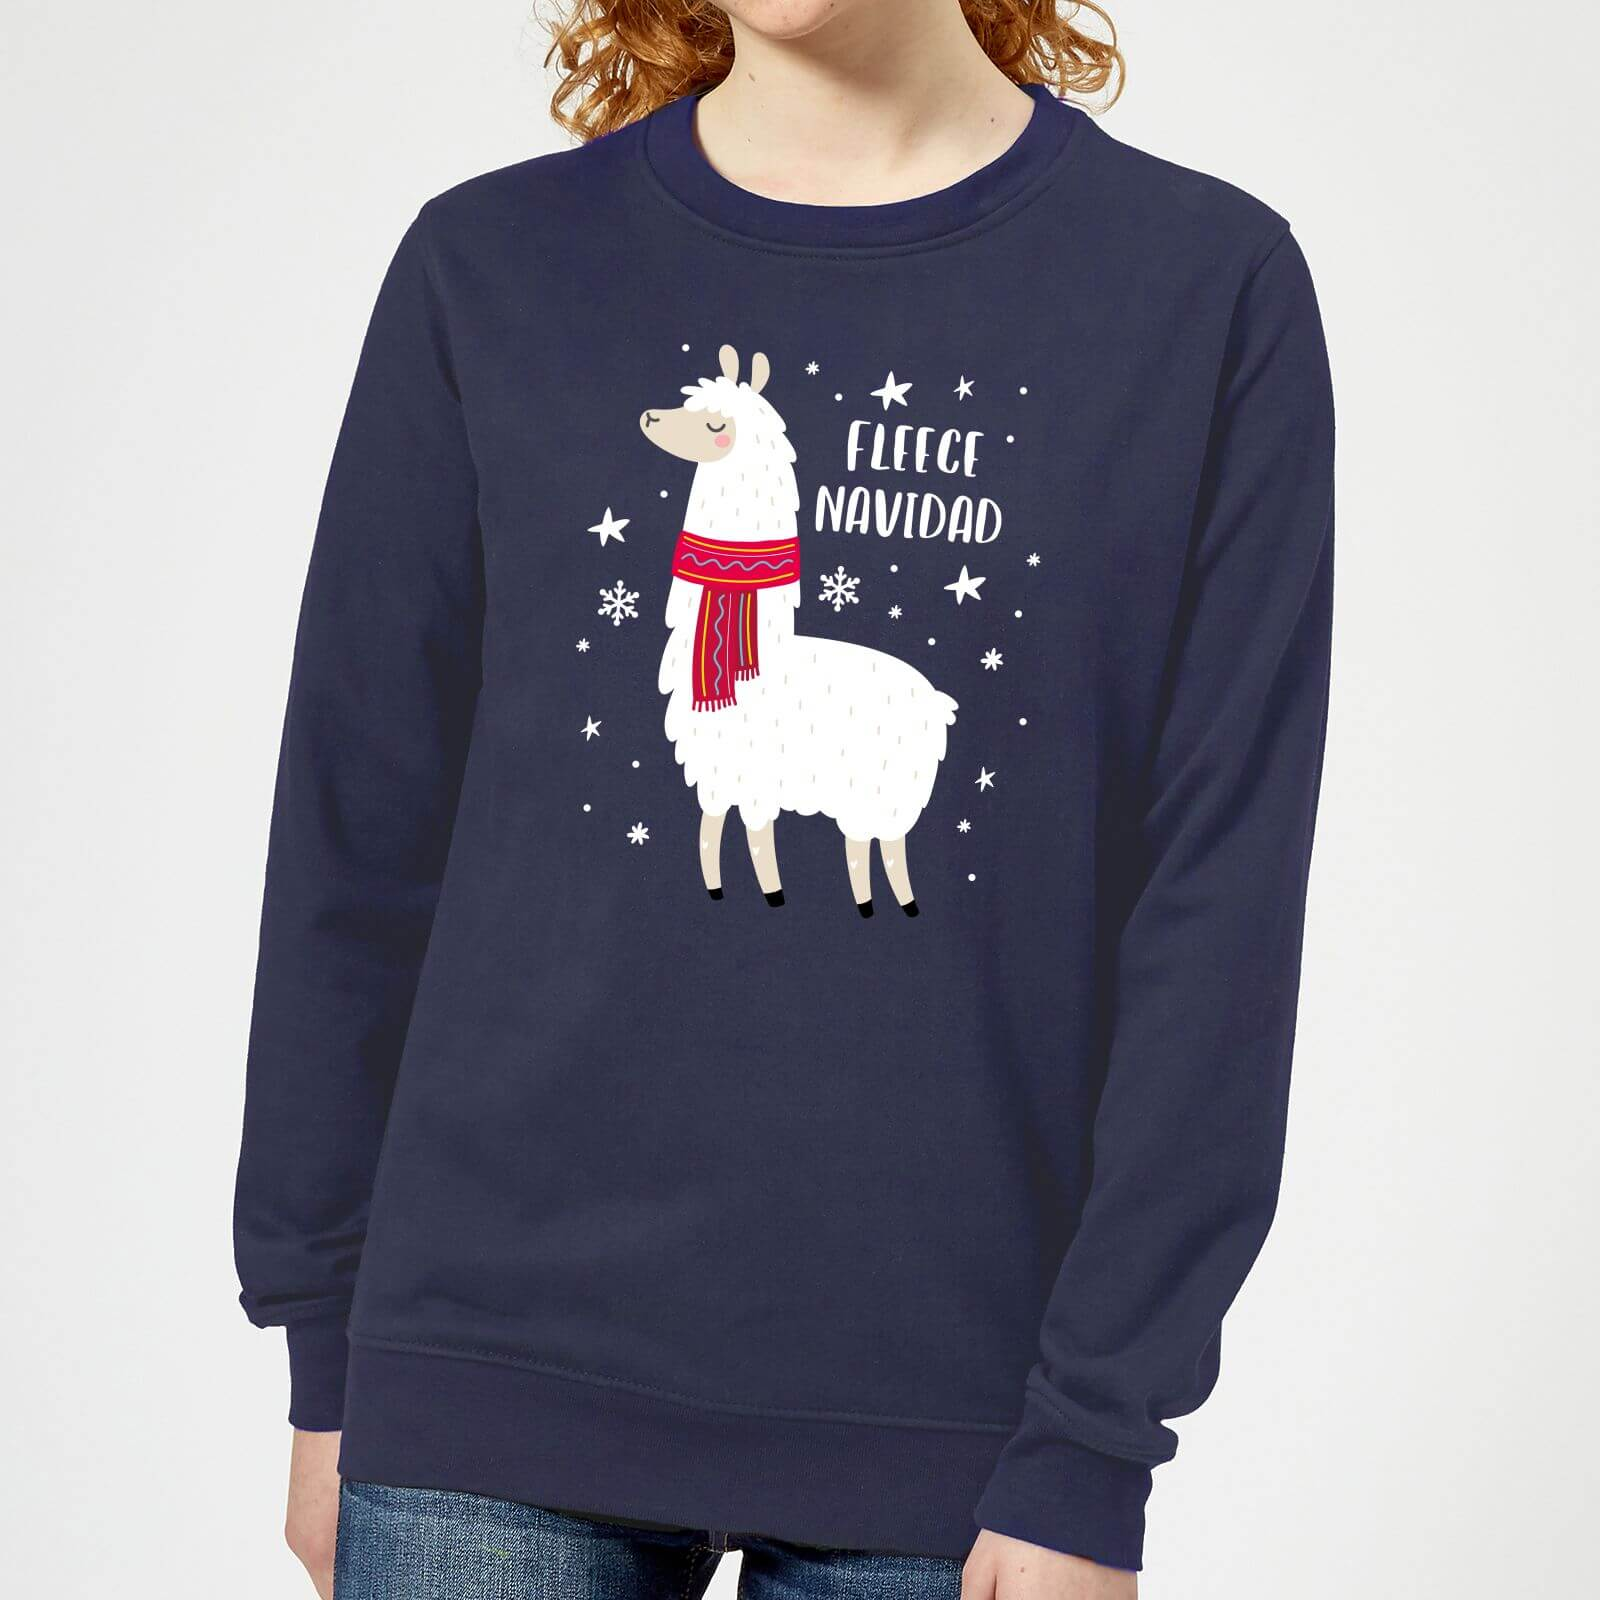 Fleece Navidad Womens Christmas Sweatshirt Navy Iwoot